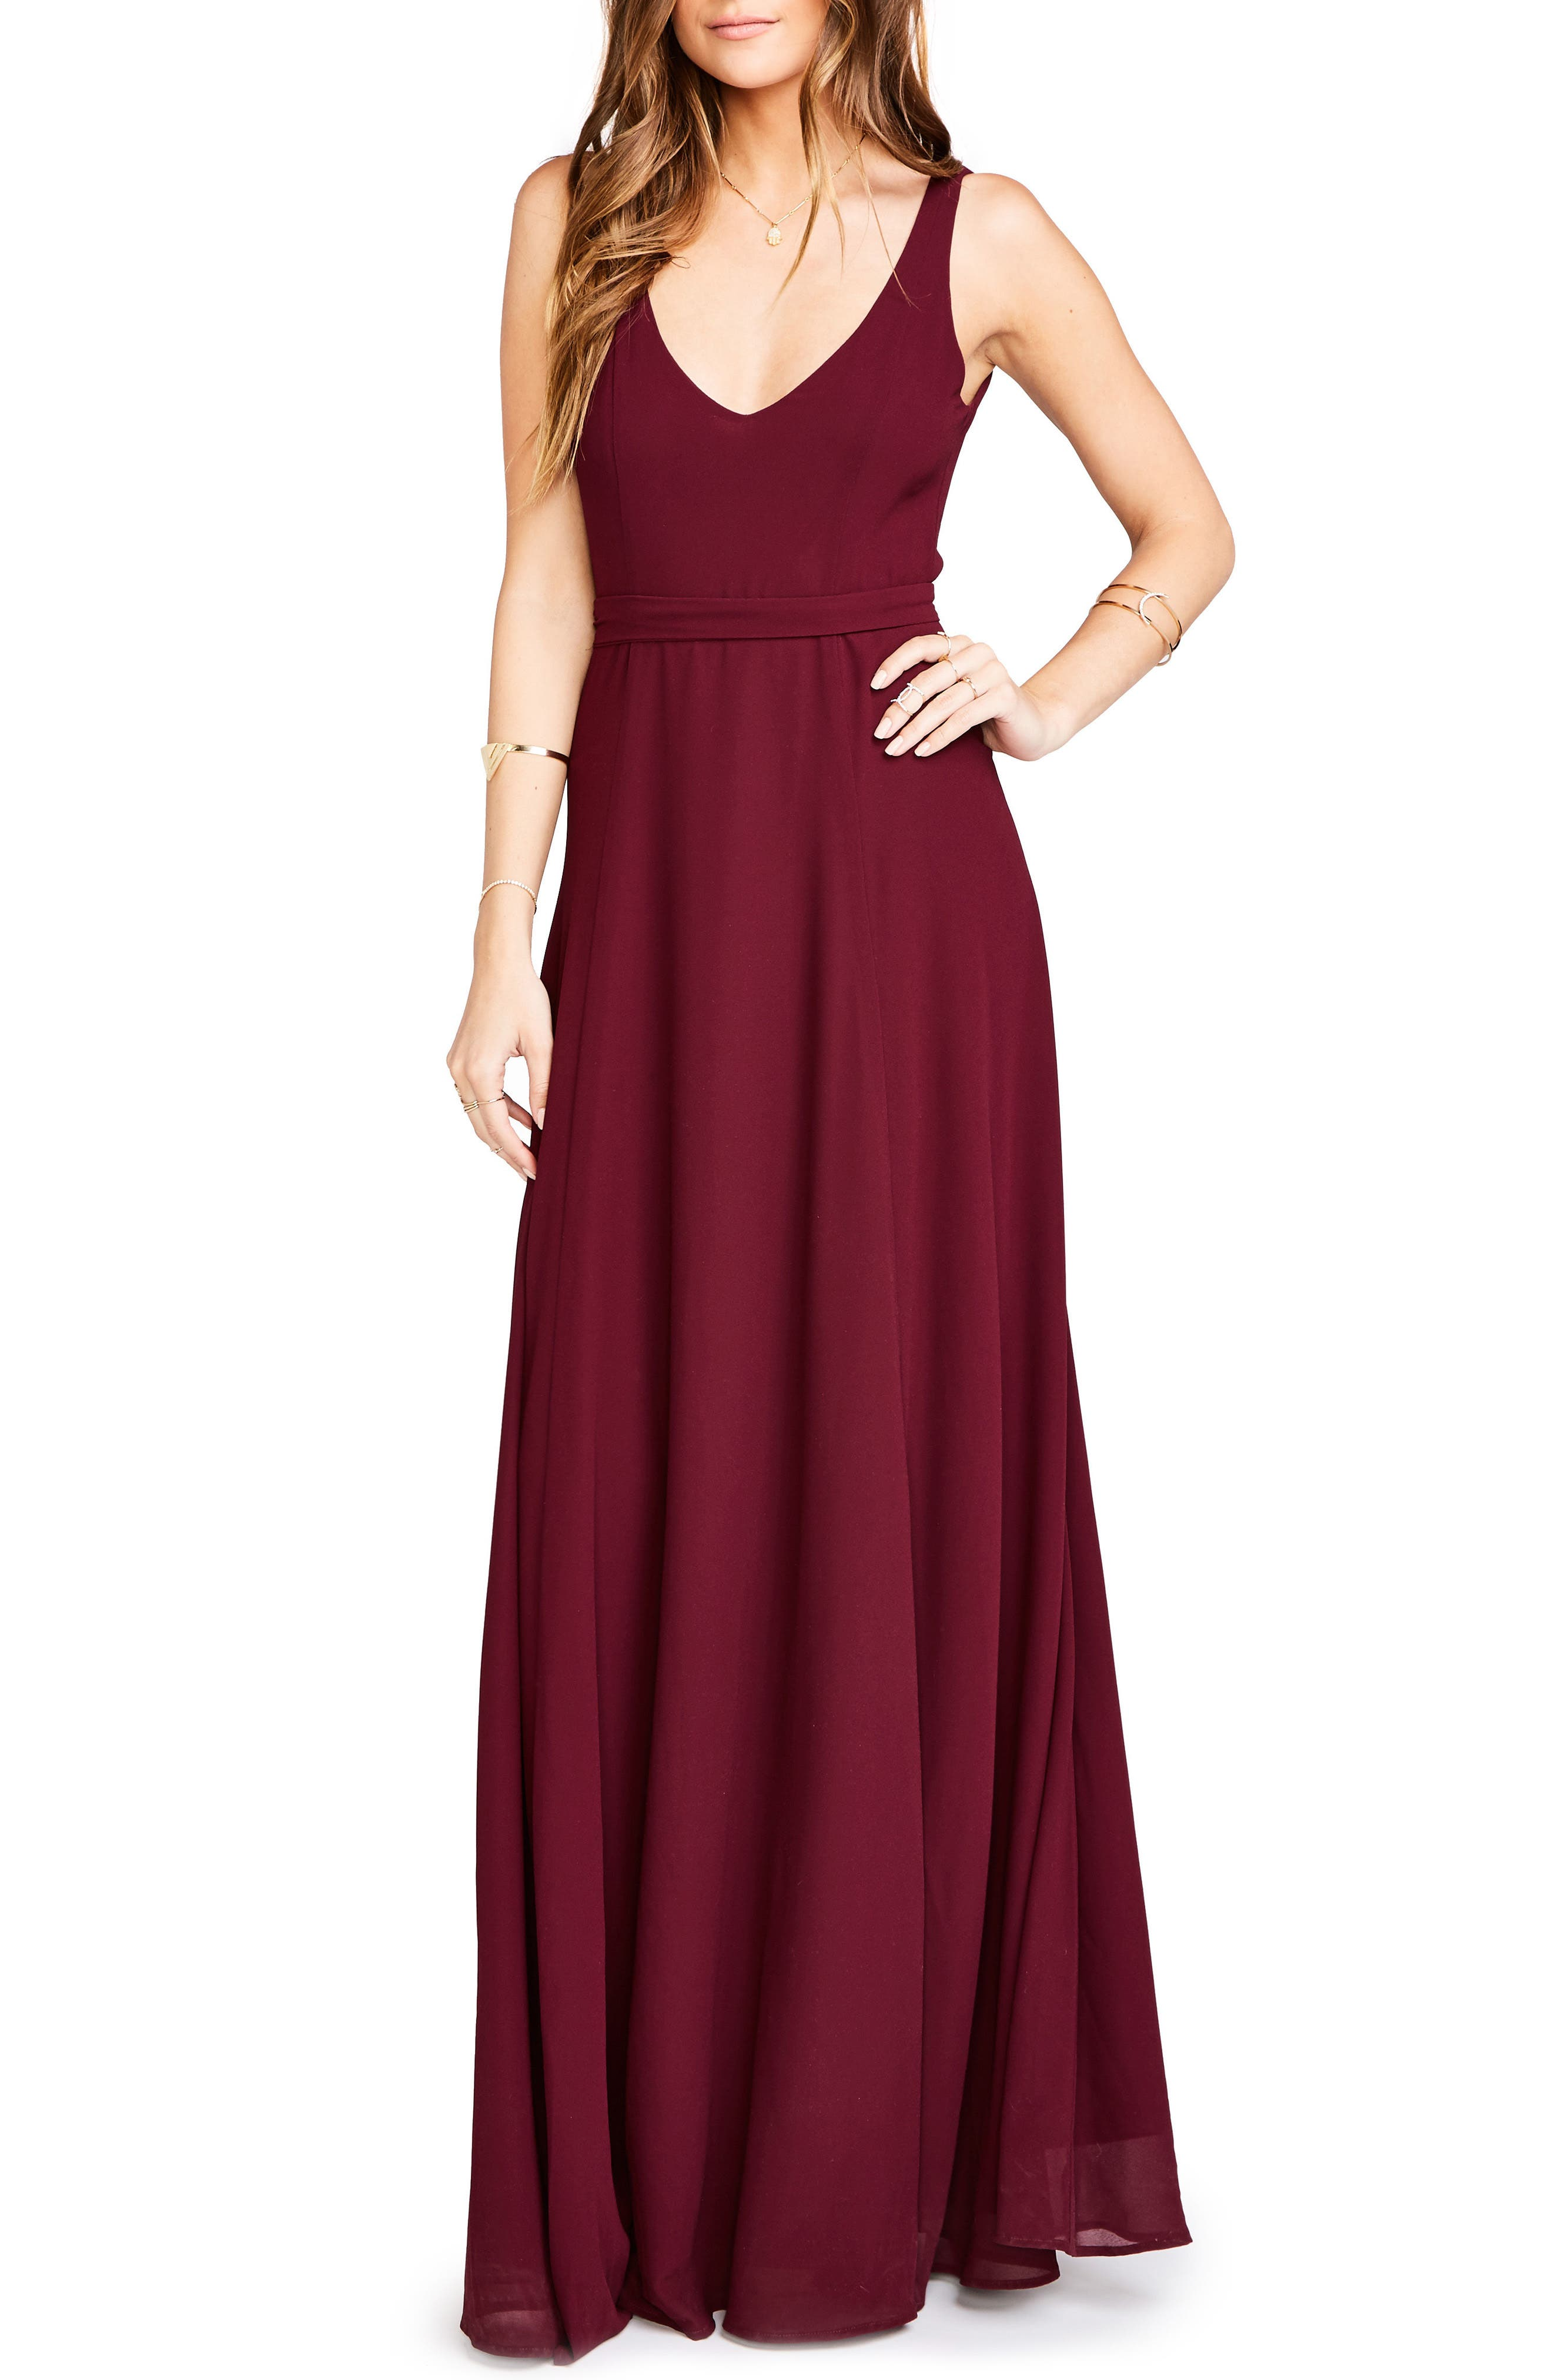 Good Places to Buy Dresses